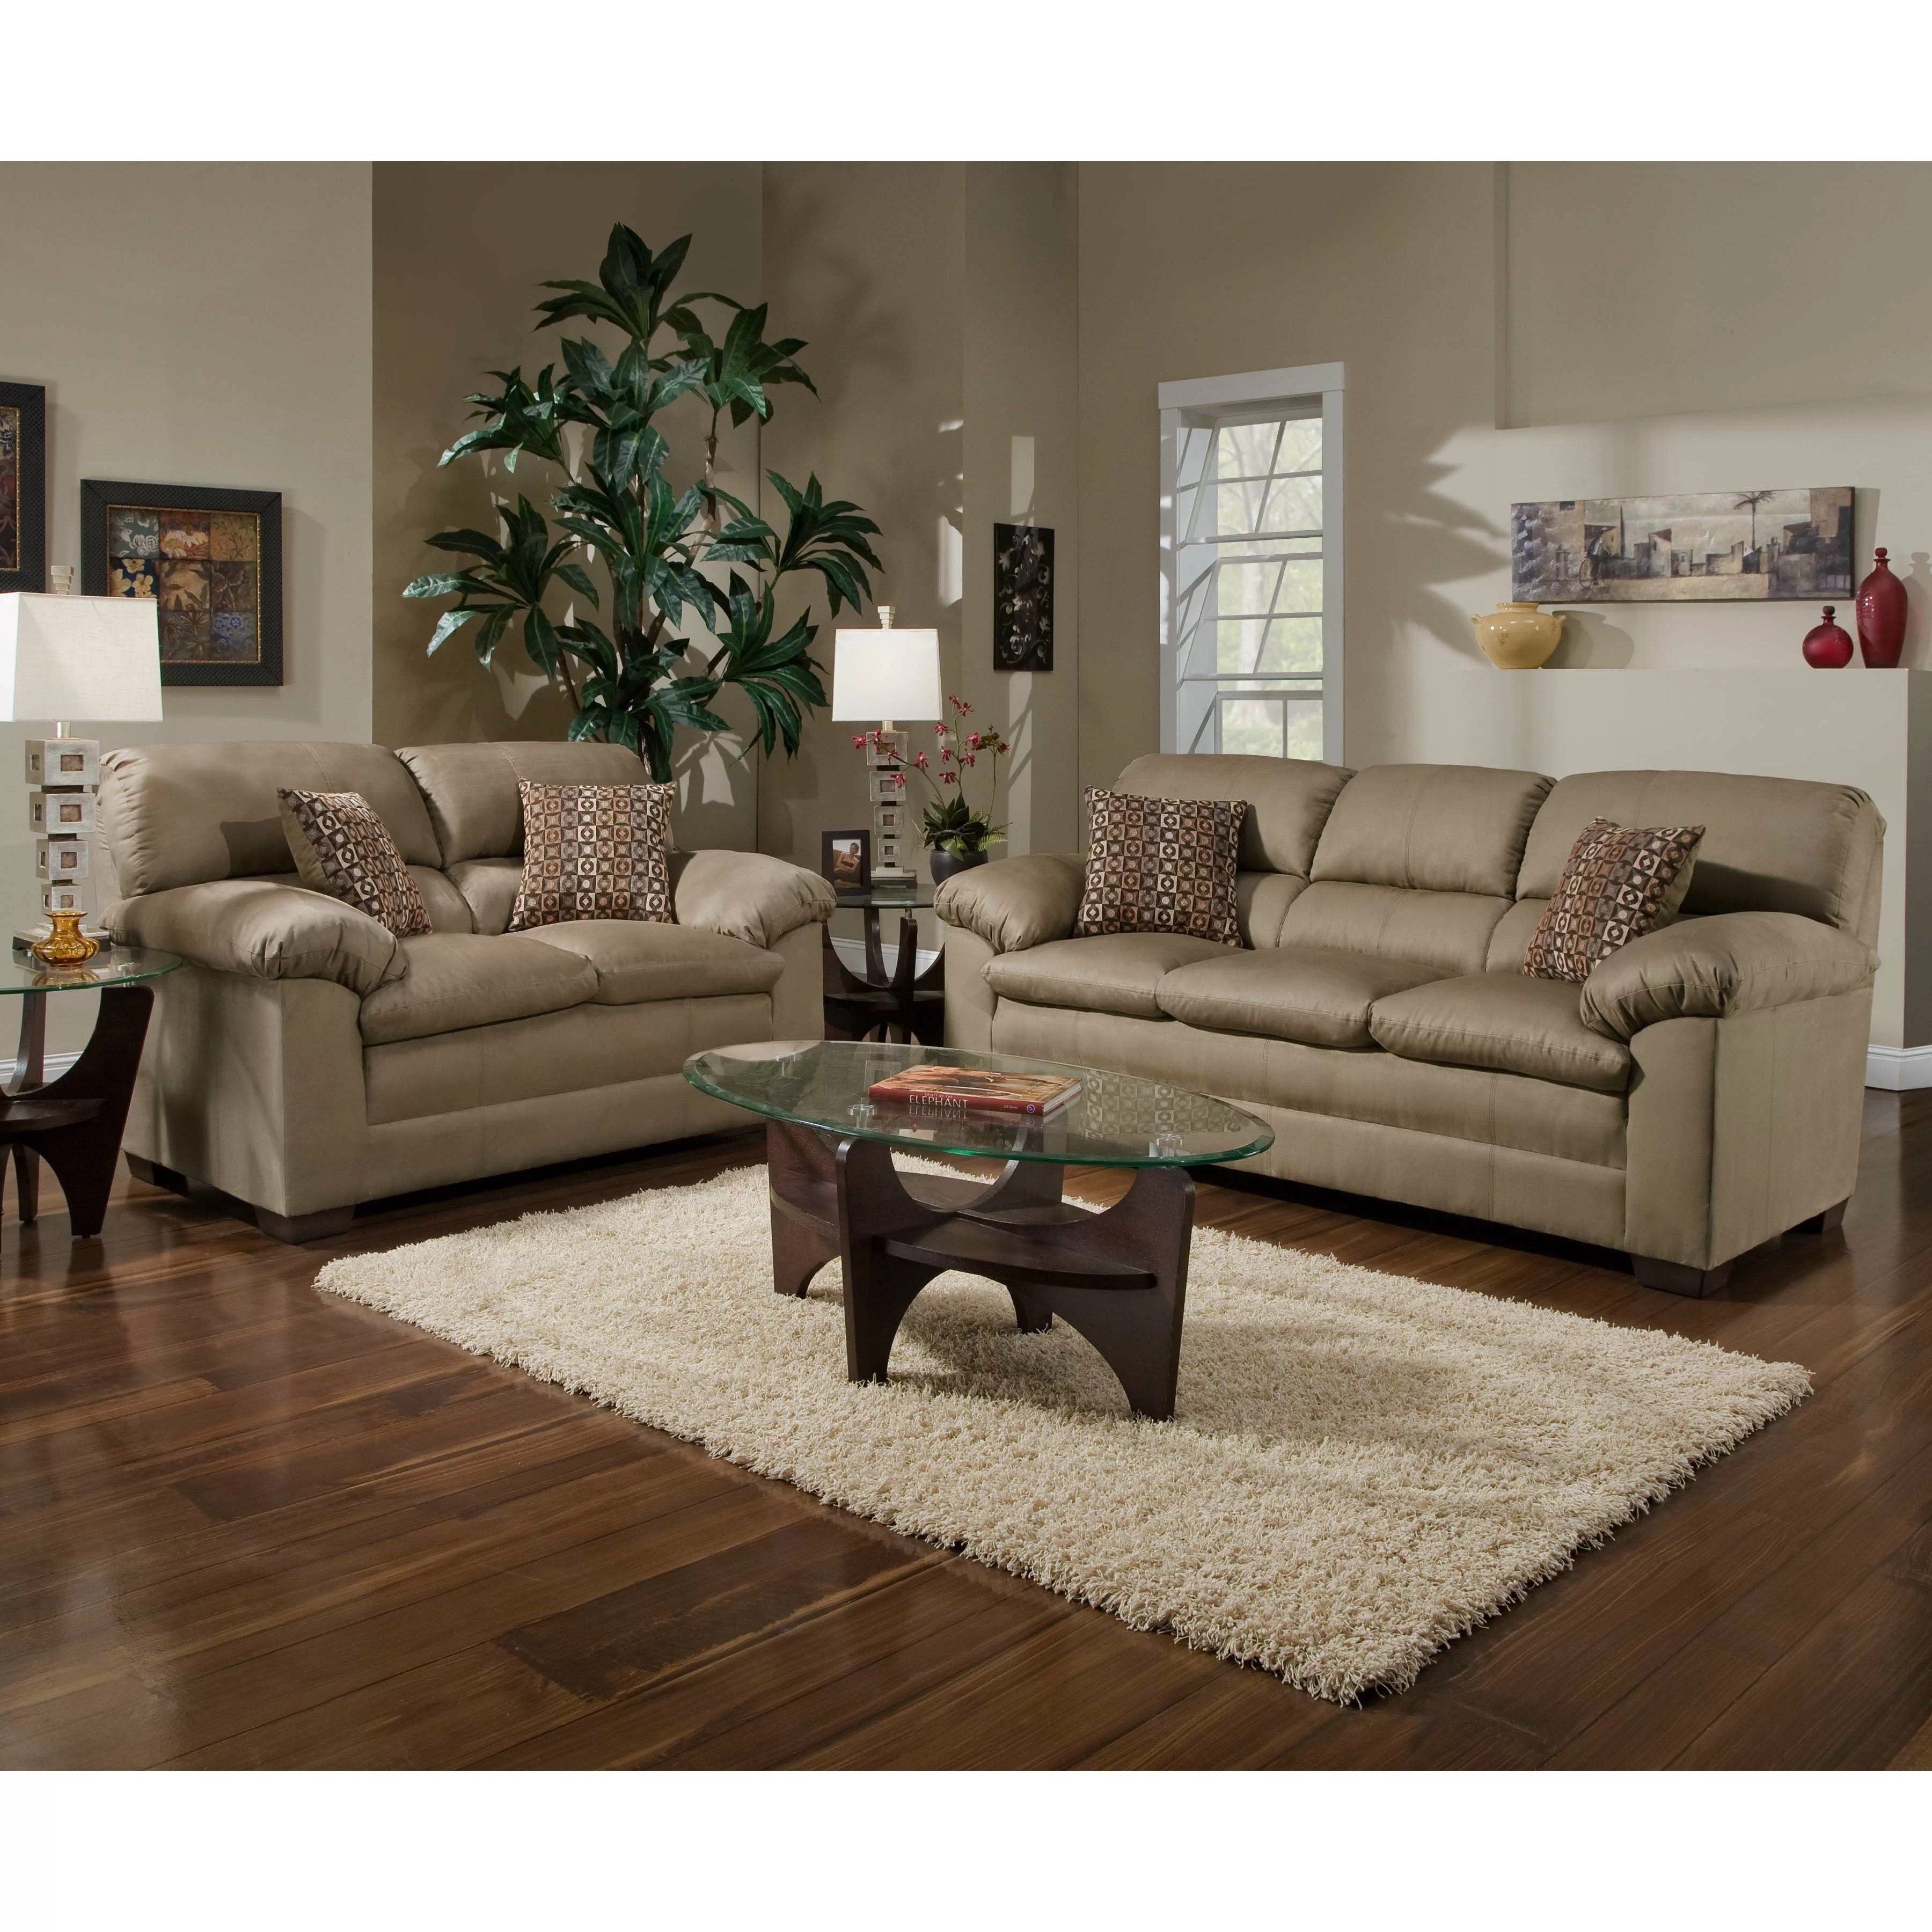 simmons sofa and loveseat best recliner sets upholstery velocity reviews wayfair